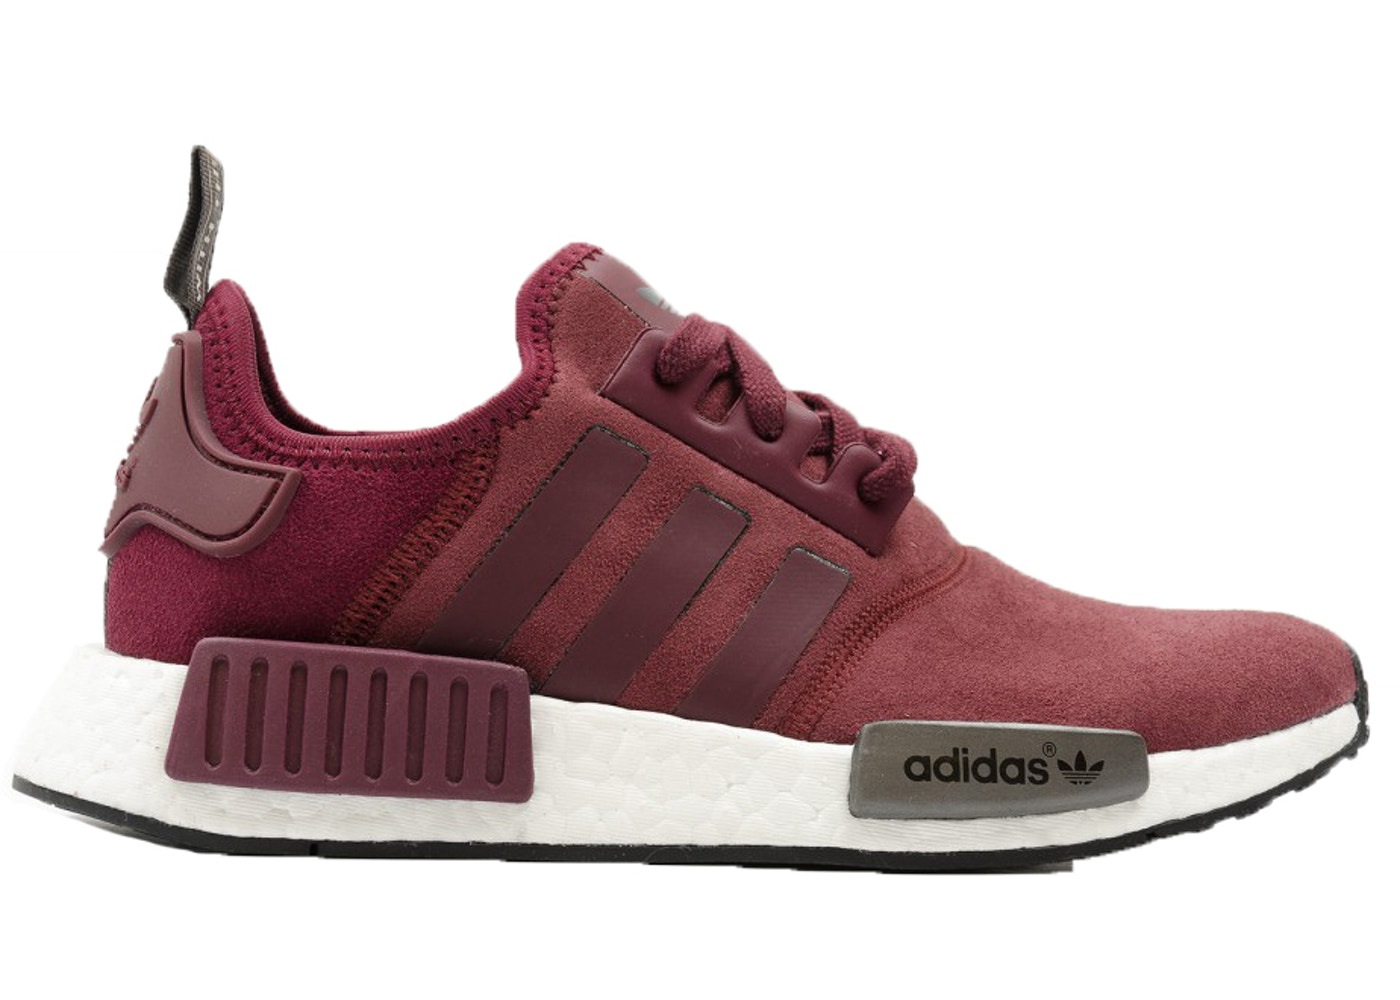 d8d33278c6a9e adidas NMD R1 Maroon Suede (W) - S75231